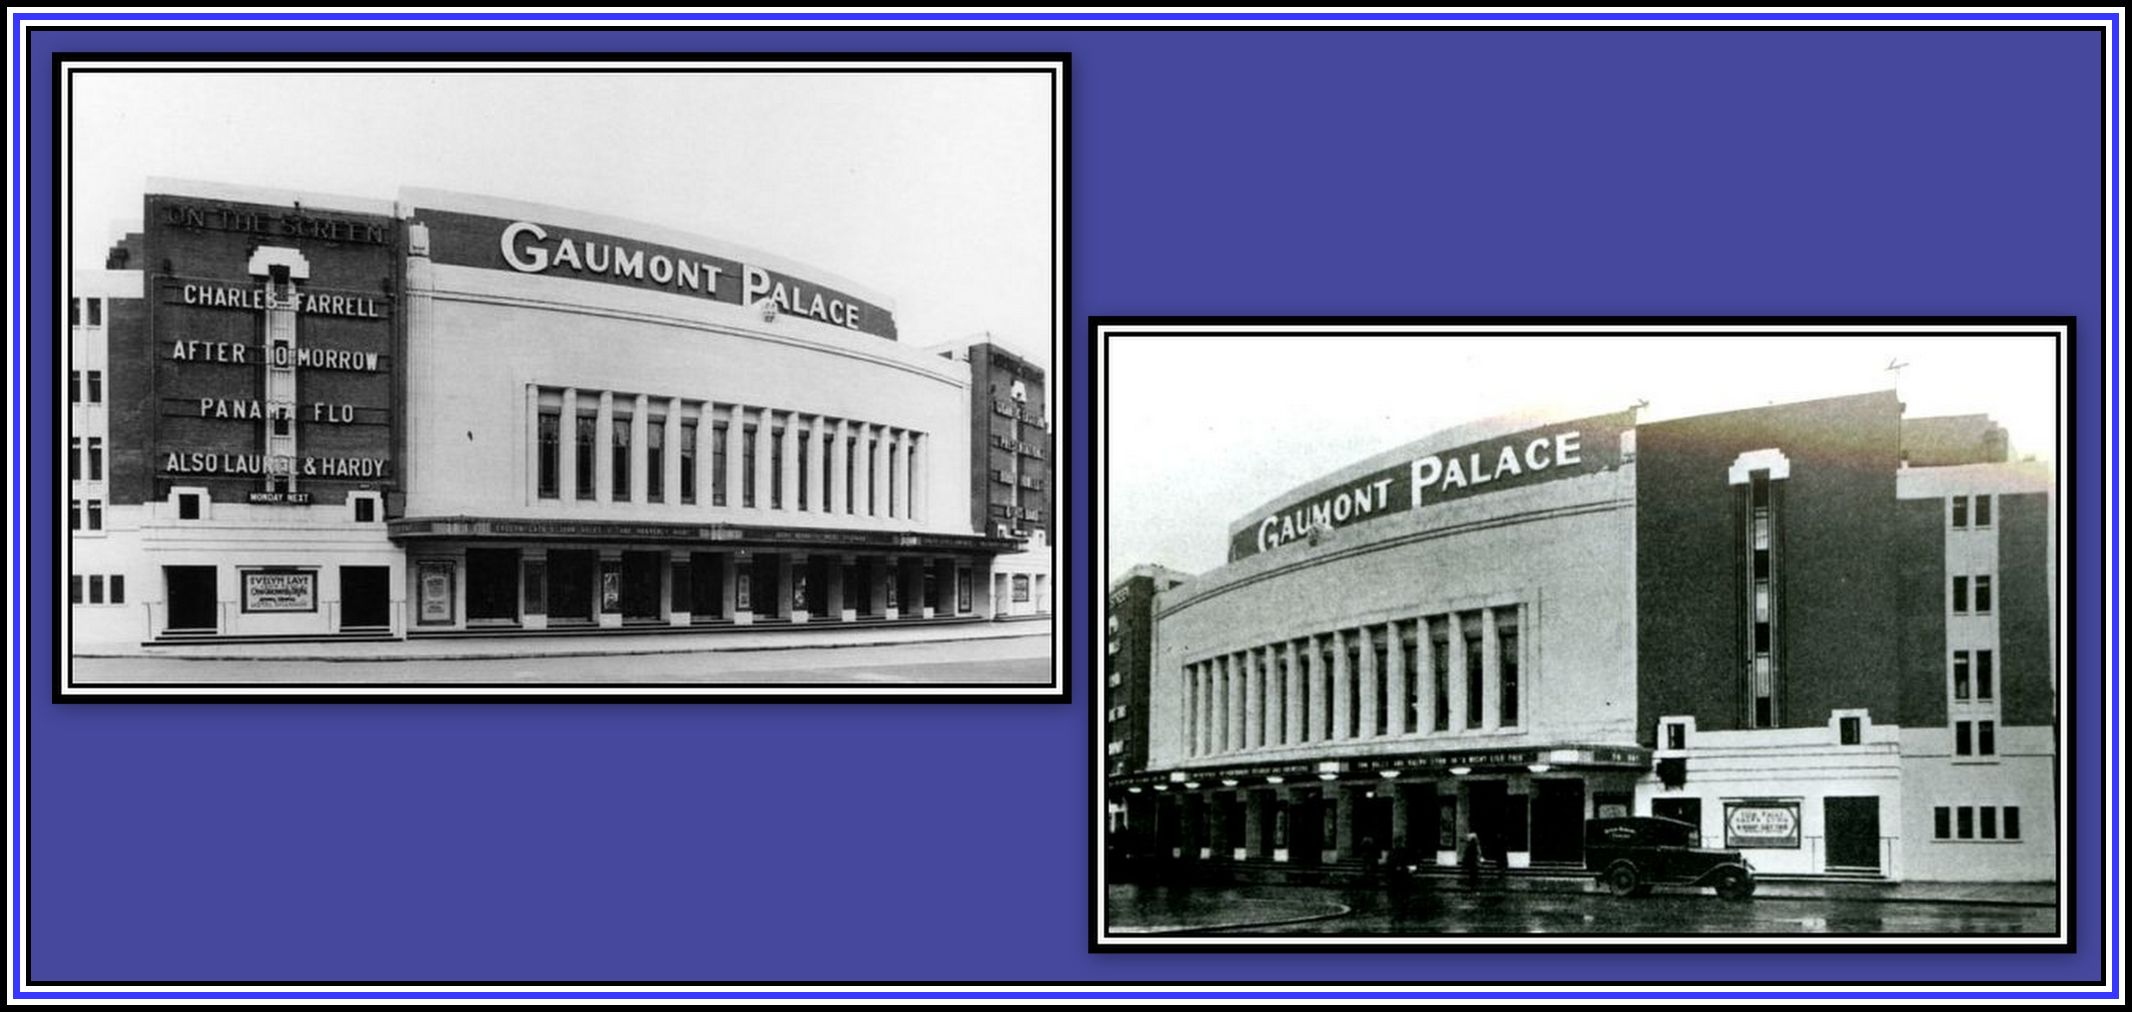 Gaumont Palace Exterior Collage